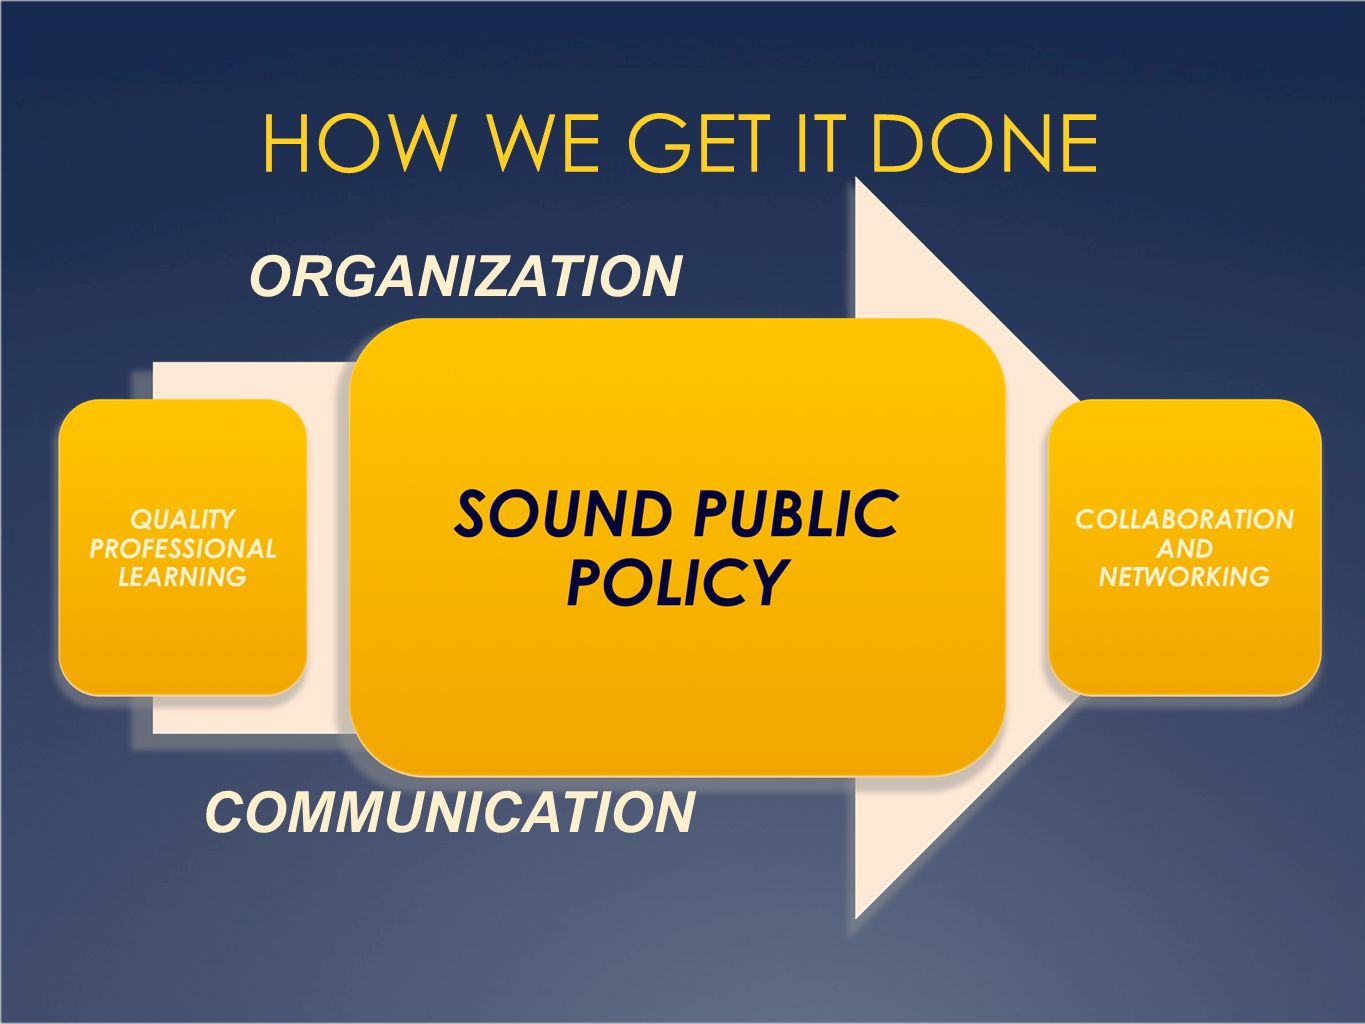 HOW WE GET IT DONE ORGANIZATION COMMUNICATION